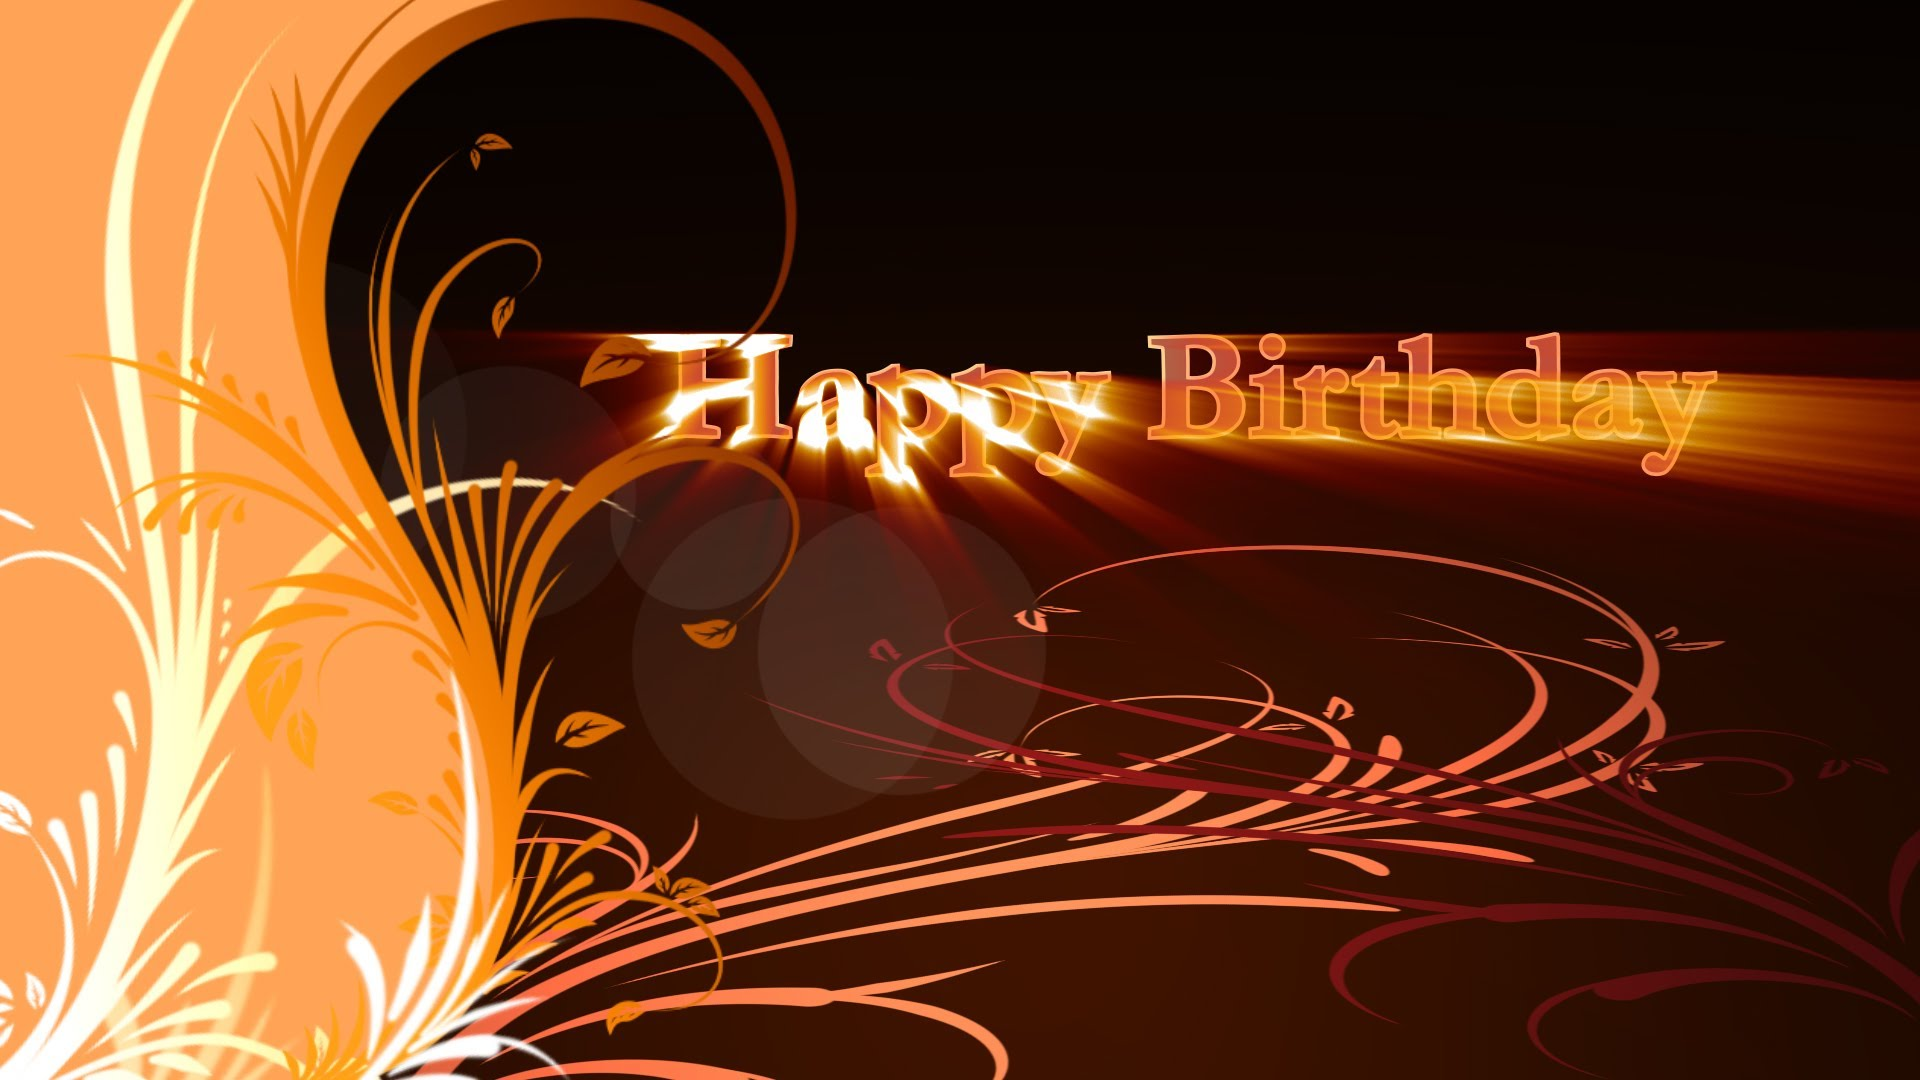 birthday background images for photoshop ; birthday-background-images-for-photoshop-6